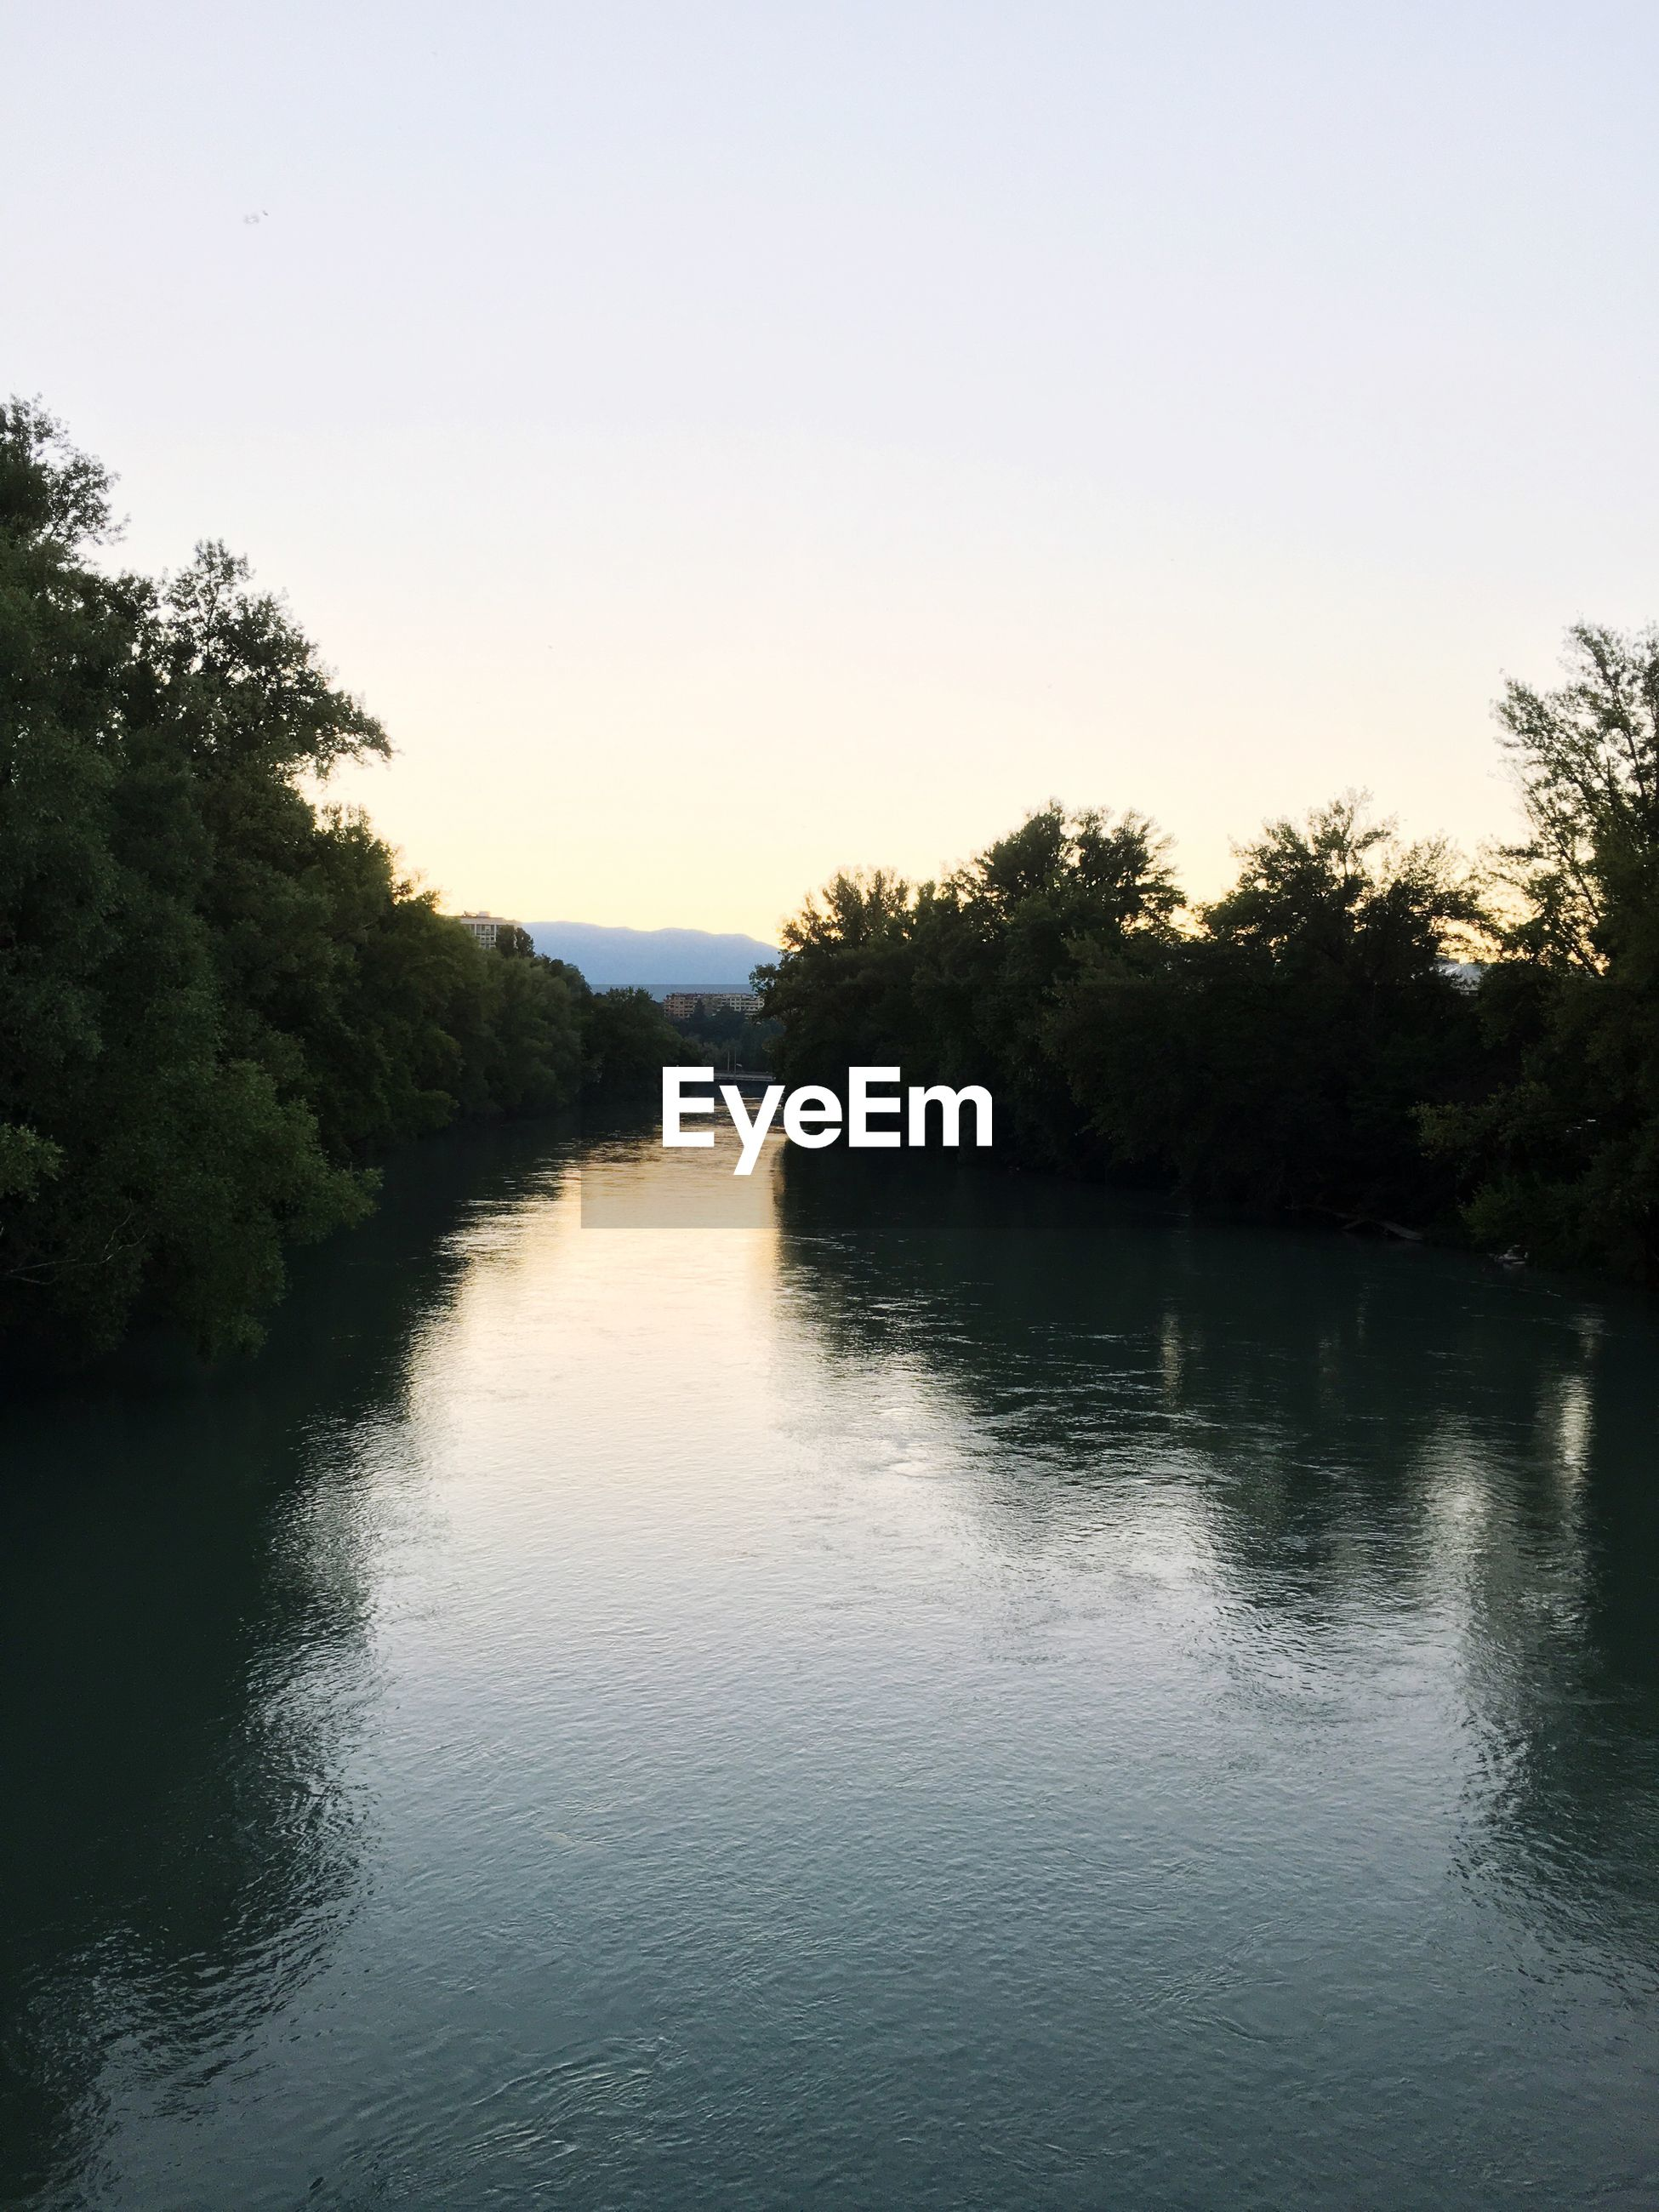 RIVER AMIDST SILHOUETTE TREES AGAINST CLEAR SKY